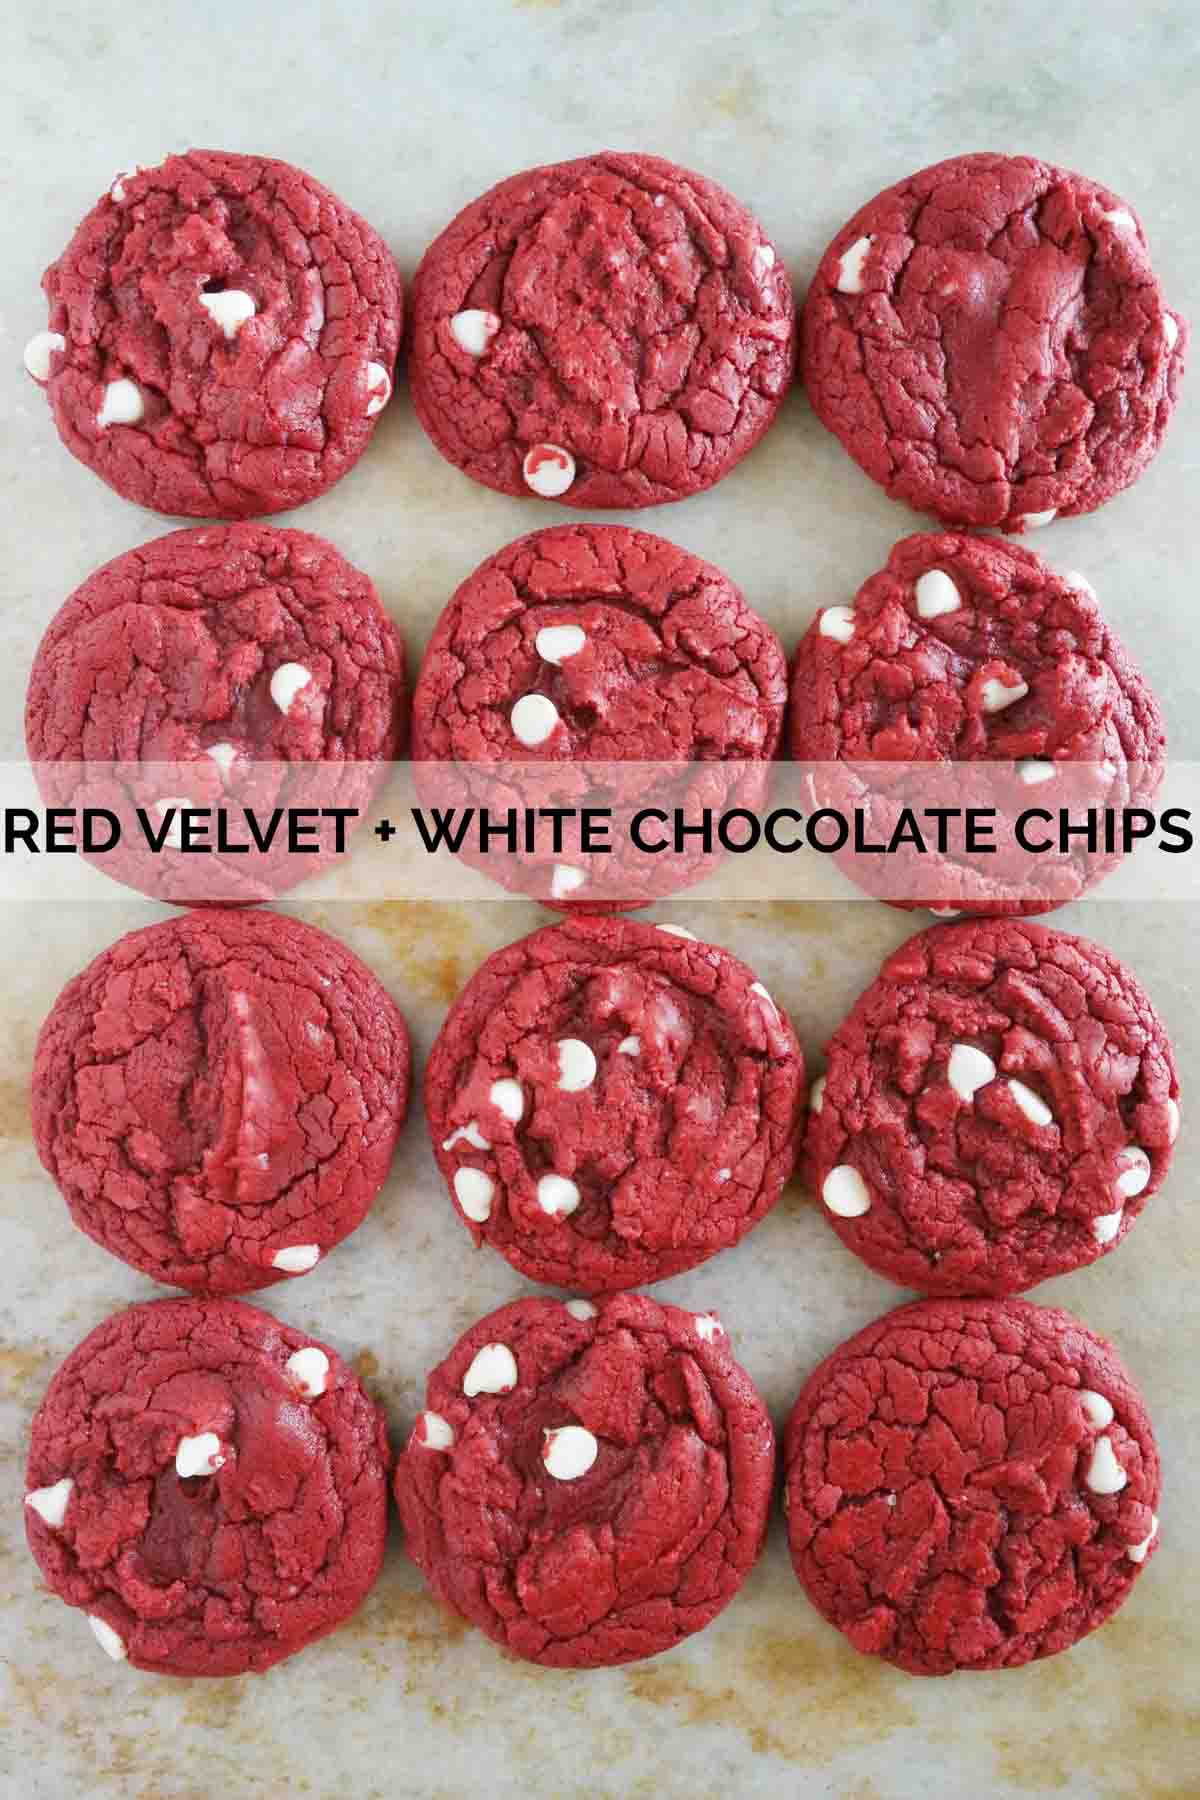 Cake mix cookies made from red velvet cake mix and white chocolate chips